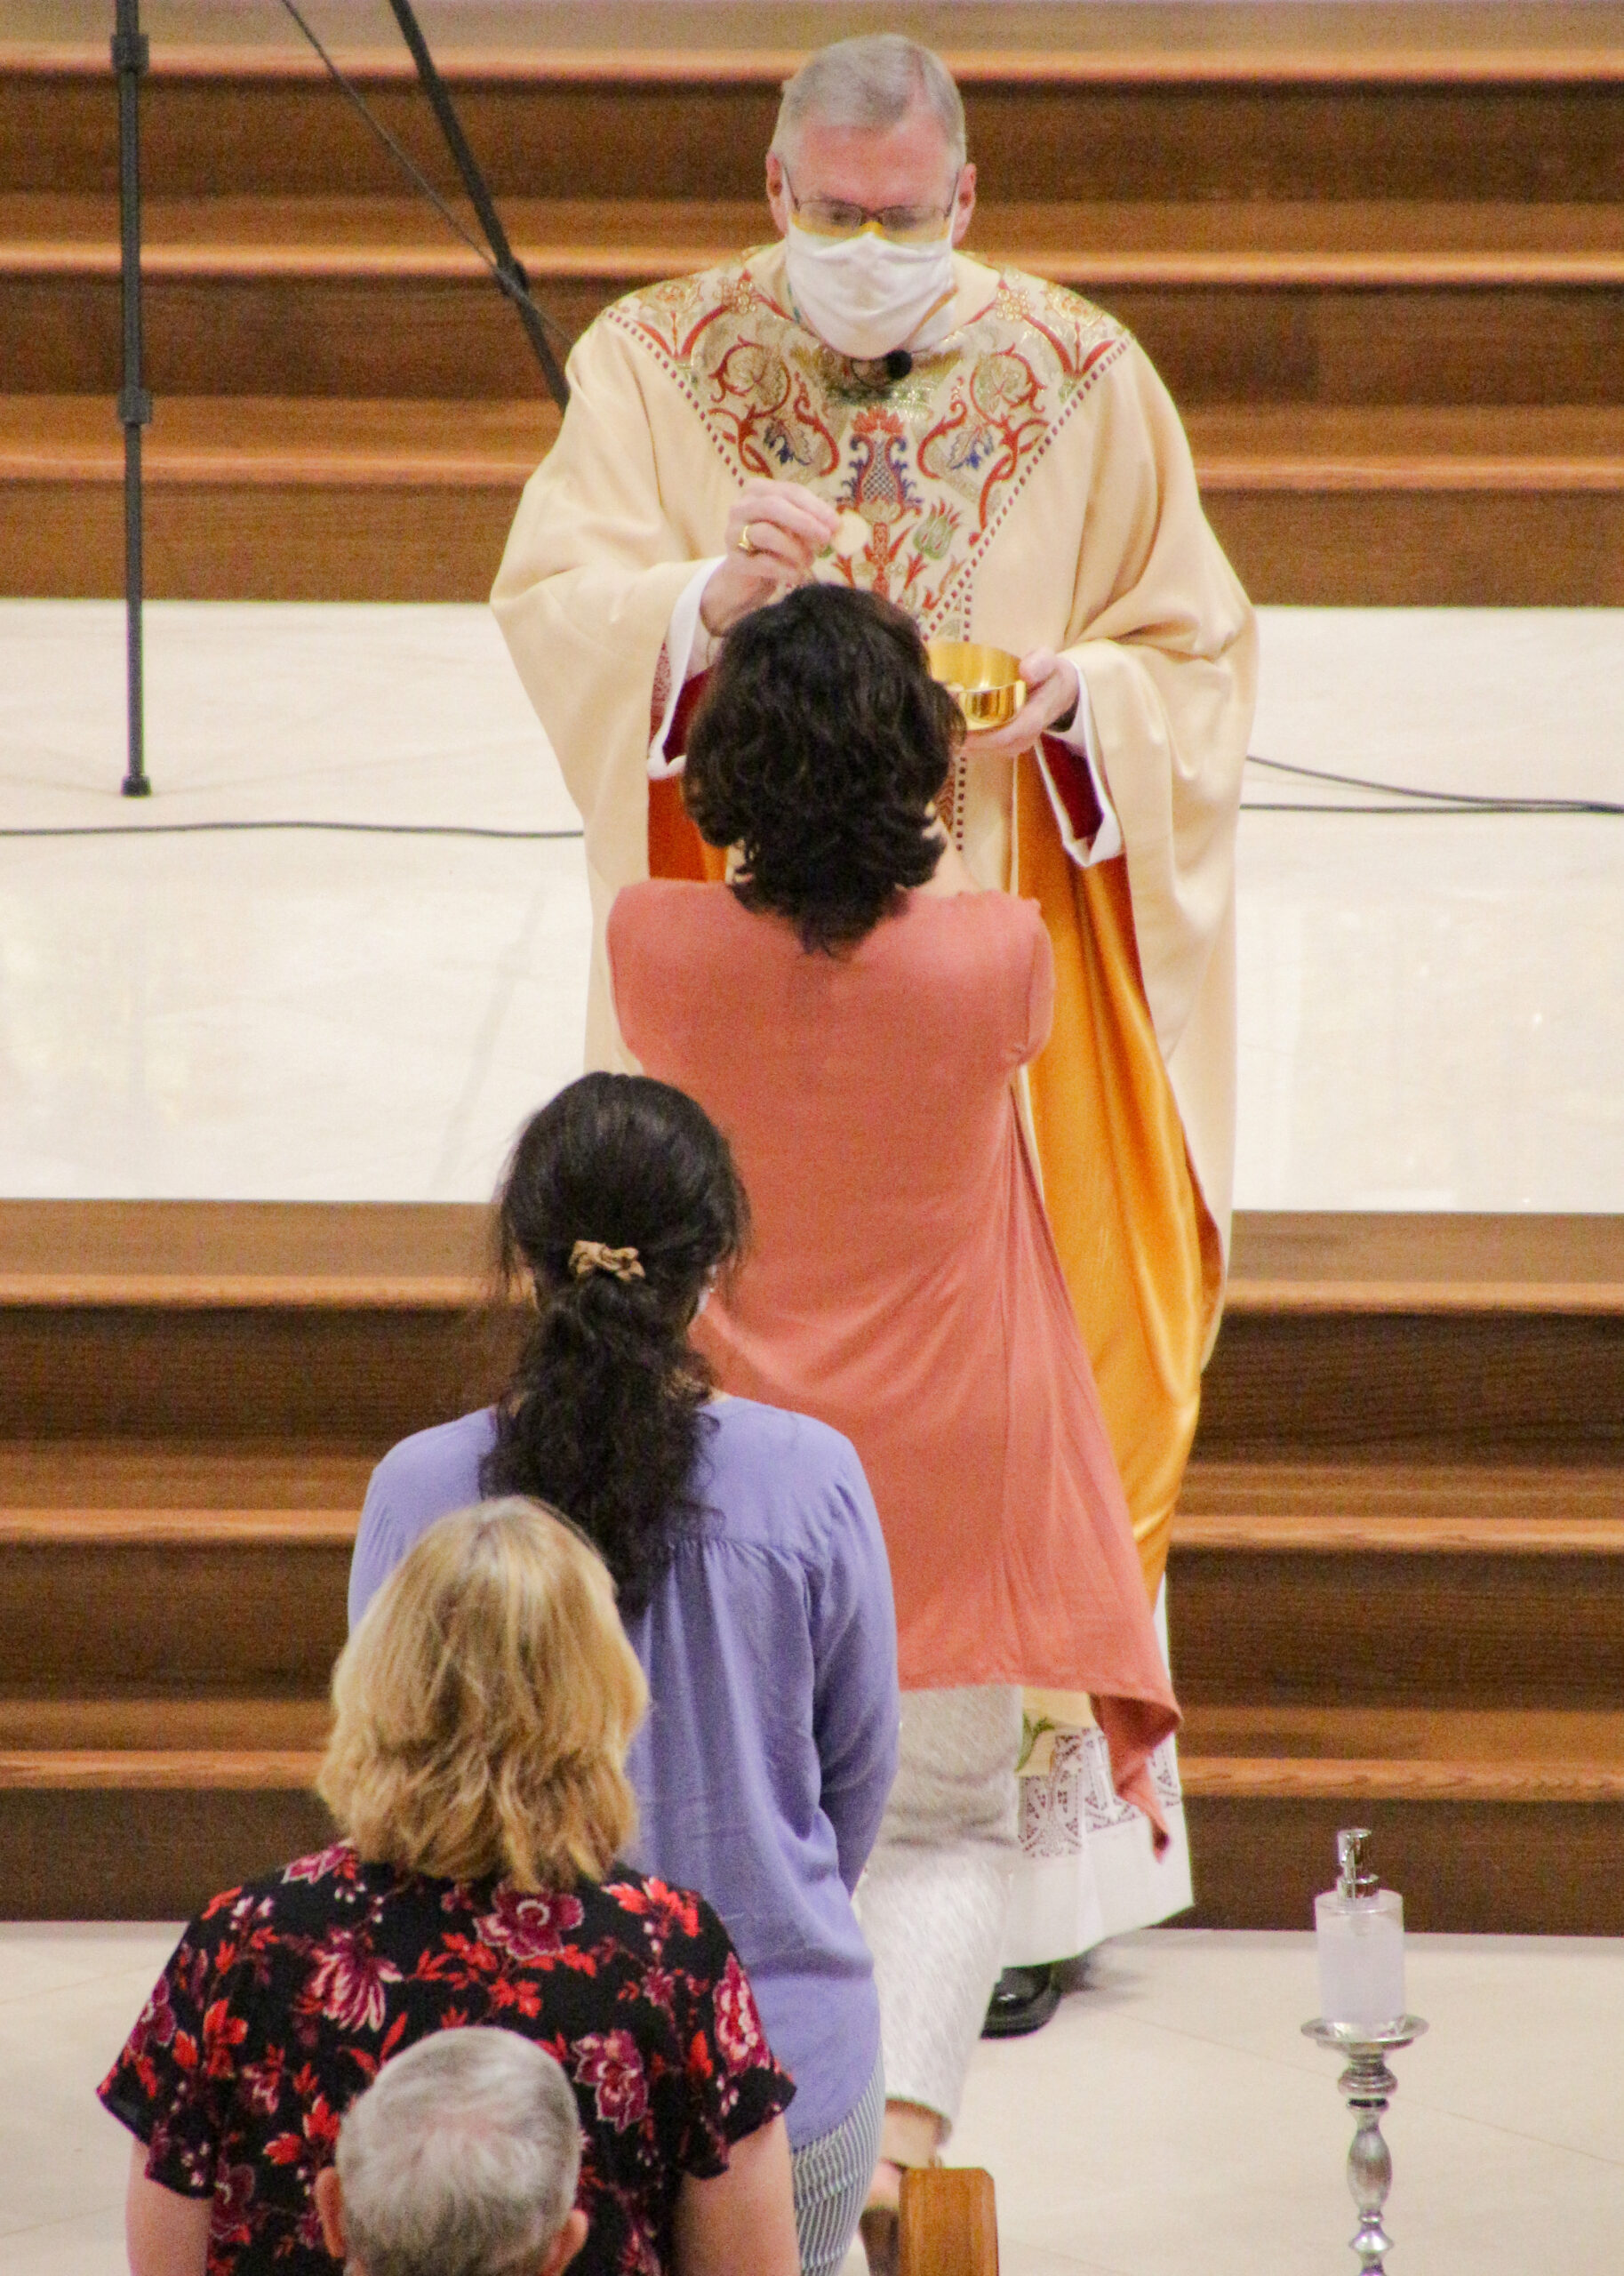 Parishes across the Diocese of Evansville resumed weekend Masses May 23-24. Bishop Joseph M. Siegel, shown wearing a face mask while distributing Communion, celebrated the 10:30 a.m. Mass on May 24 at St. Benedict Cathedral in Evansville. Photo special to The Message